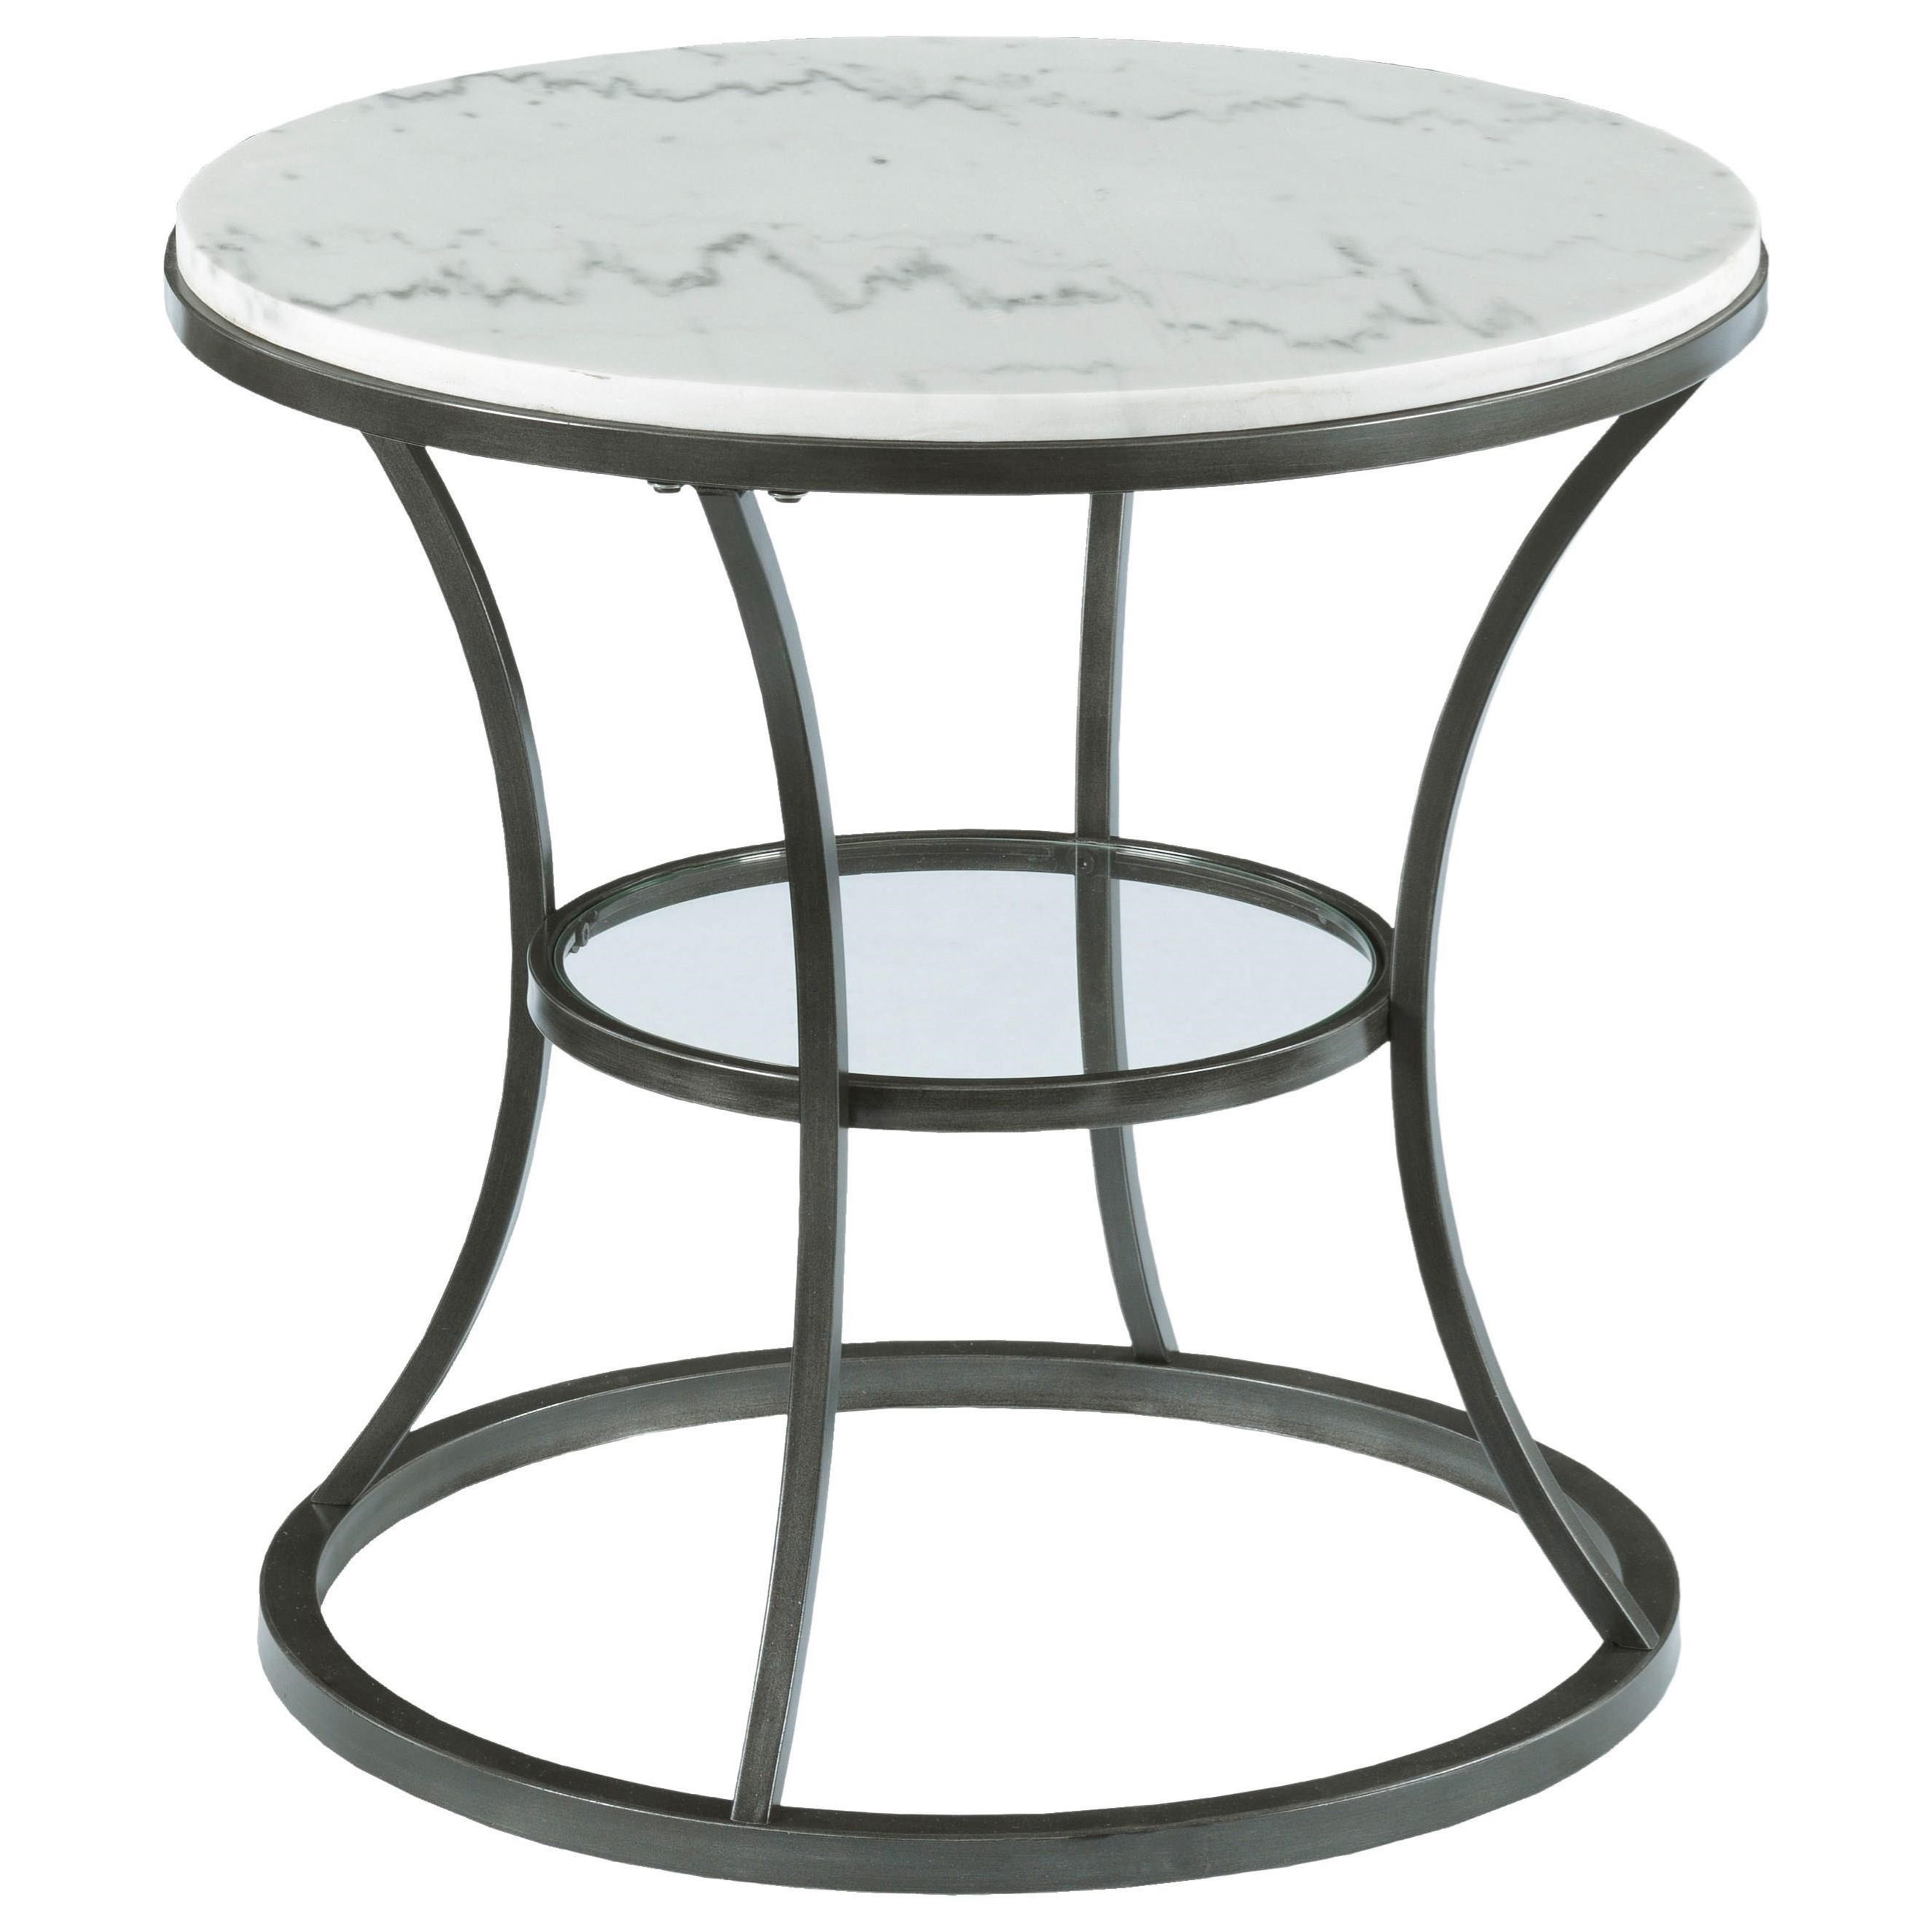 Hammary Impact Round End Table With Marble Top And Glass Shelf